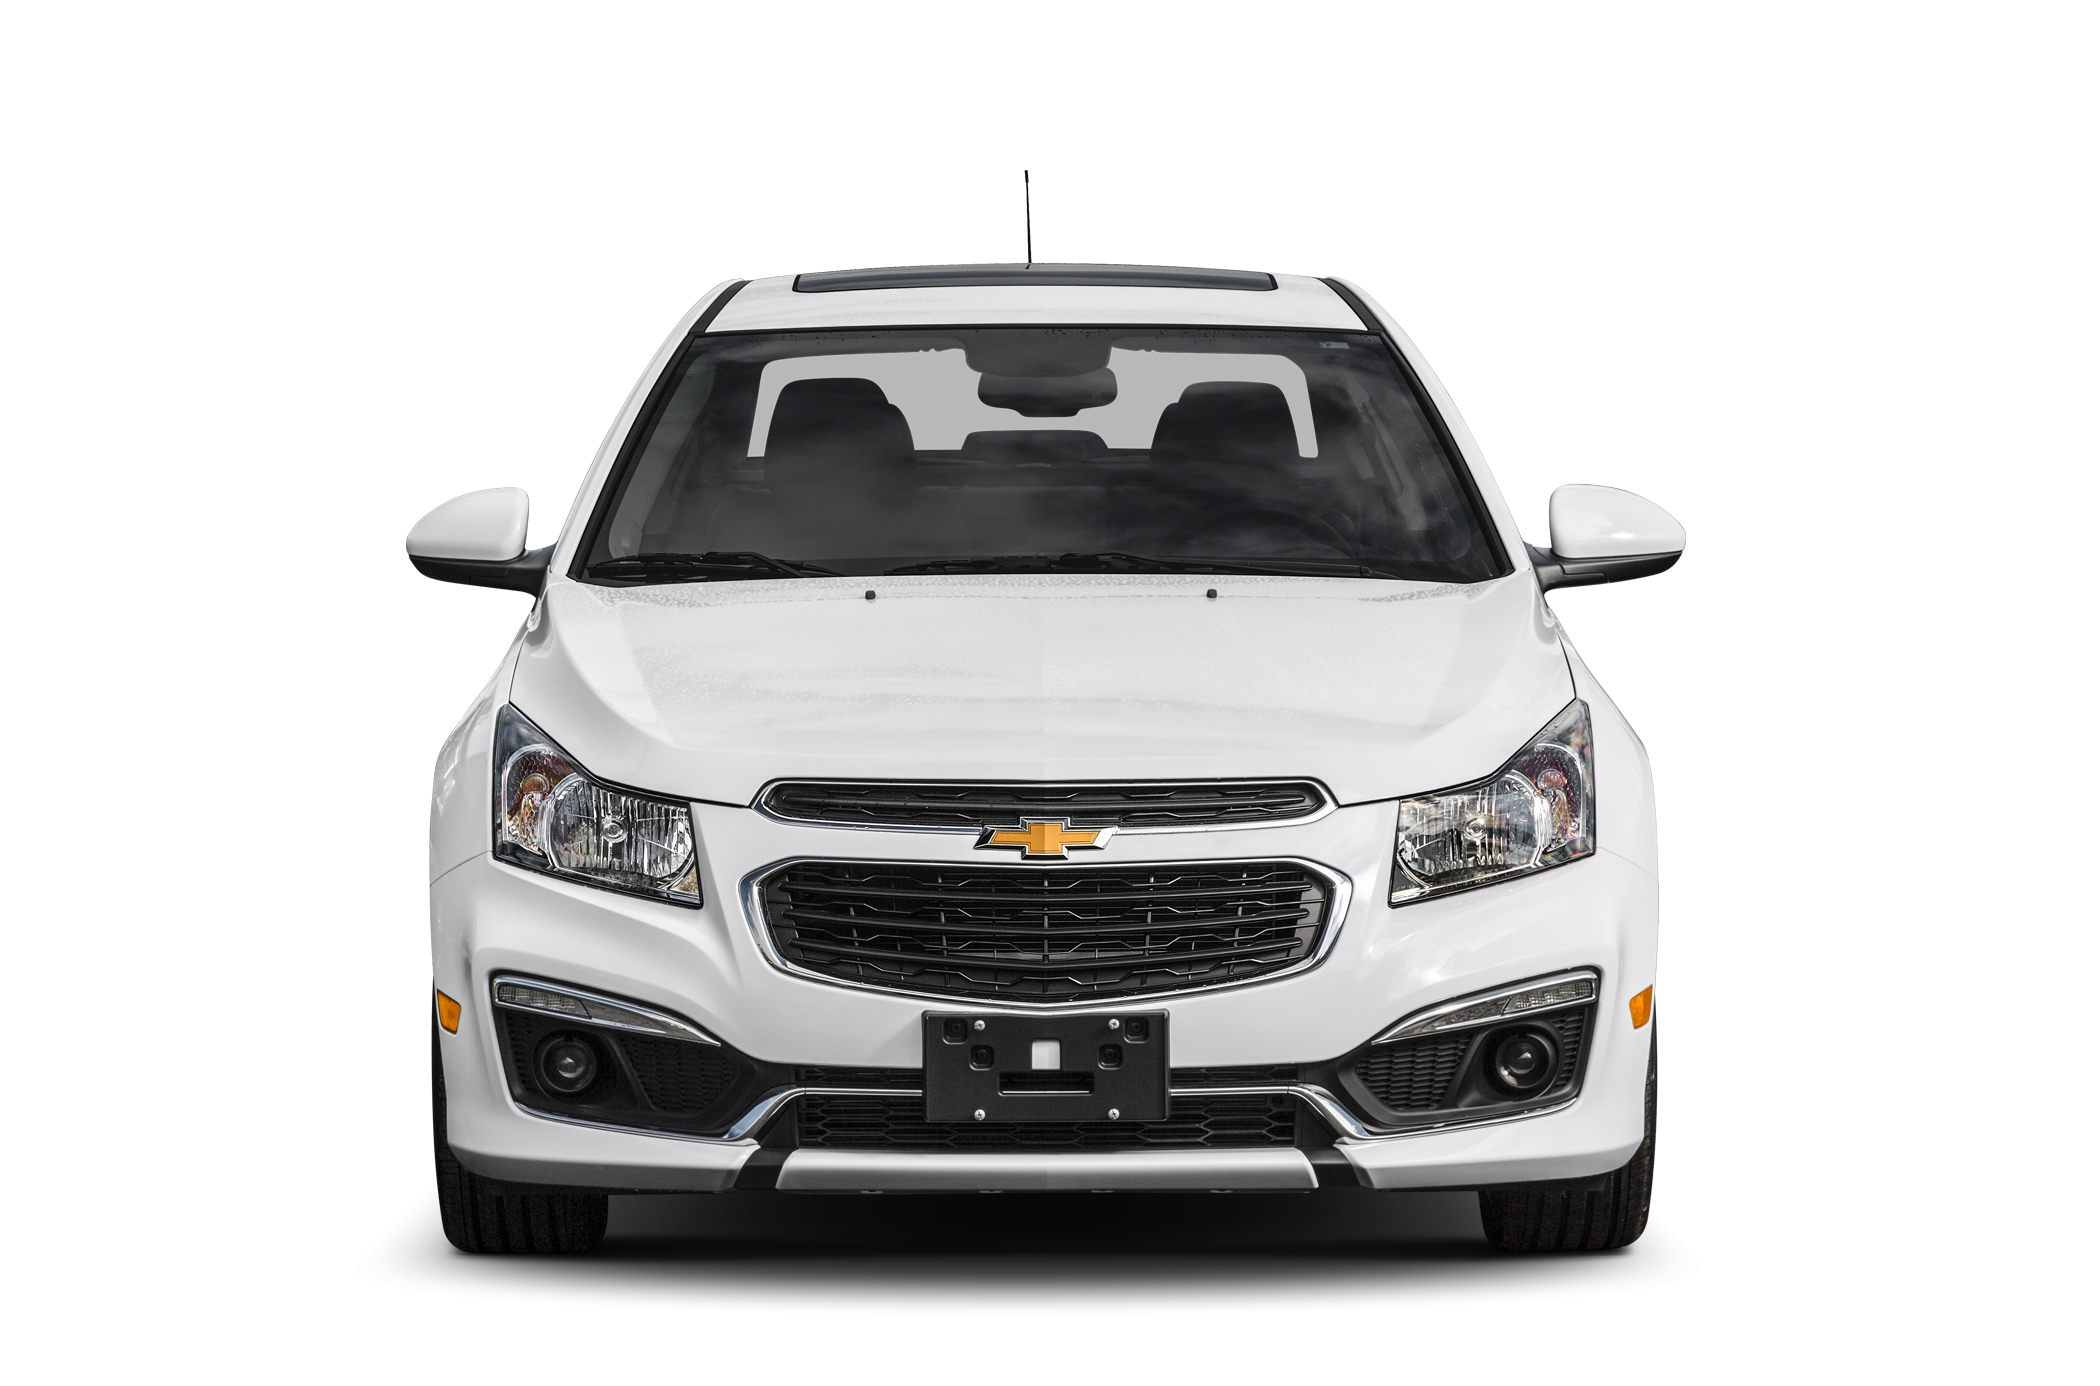 Used 2017 Chevrolet Cruze Ltz Inventory Vehicle Details At Eckenrod Ford Your Cullman Alabama Dealer